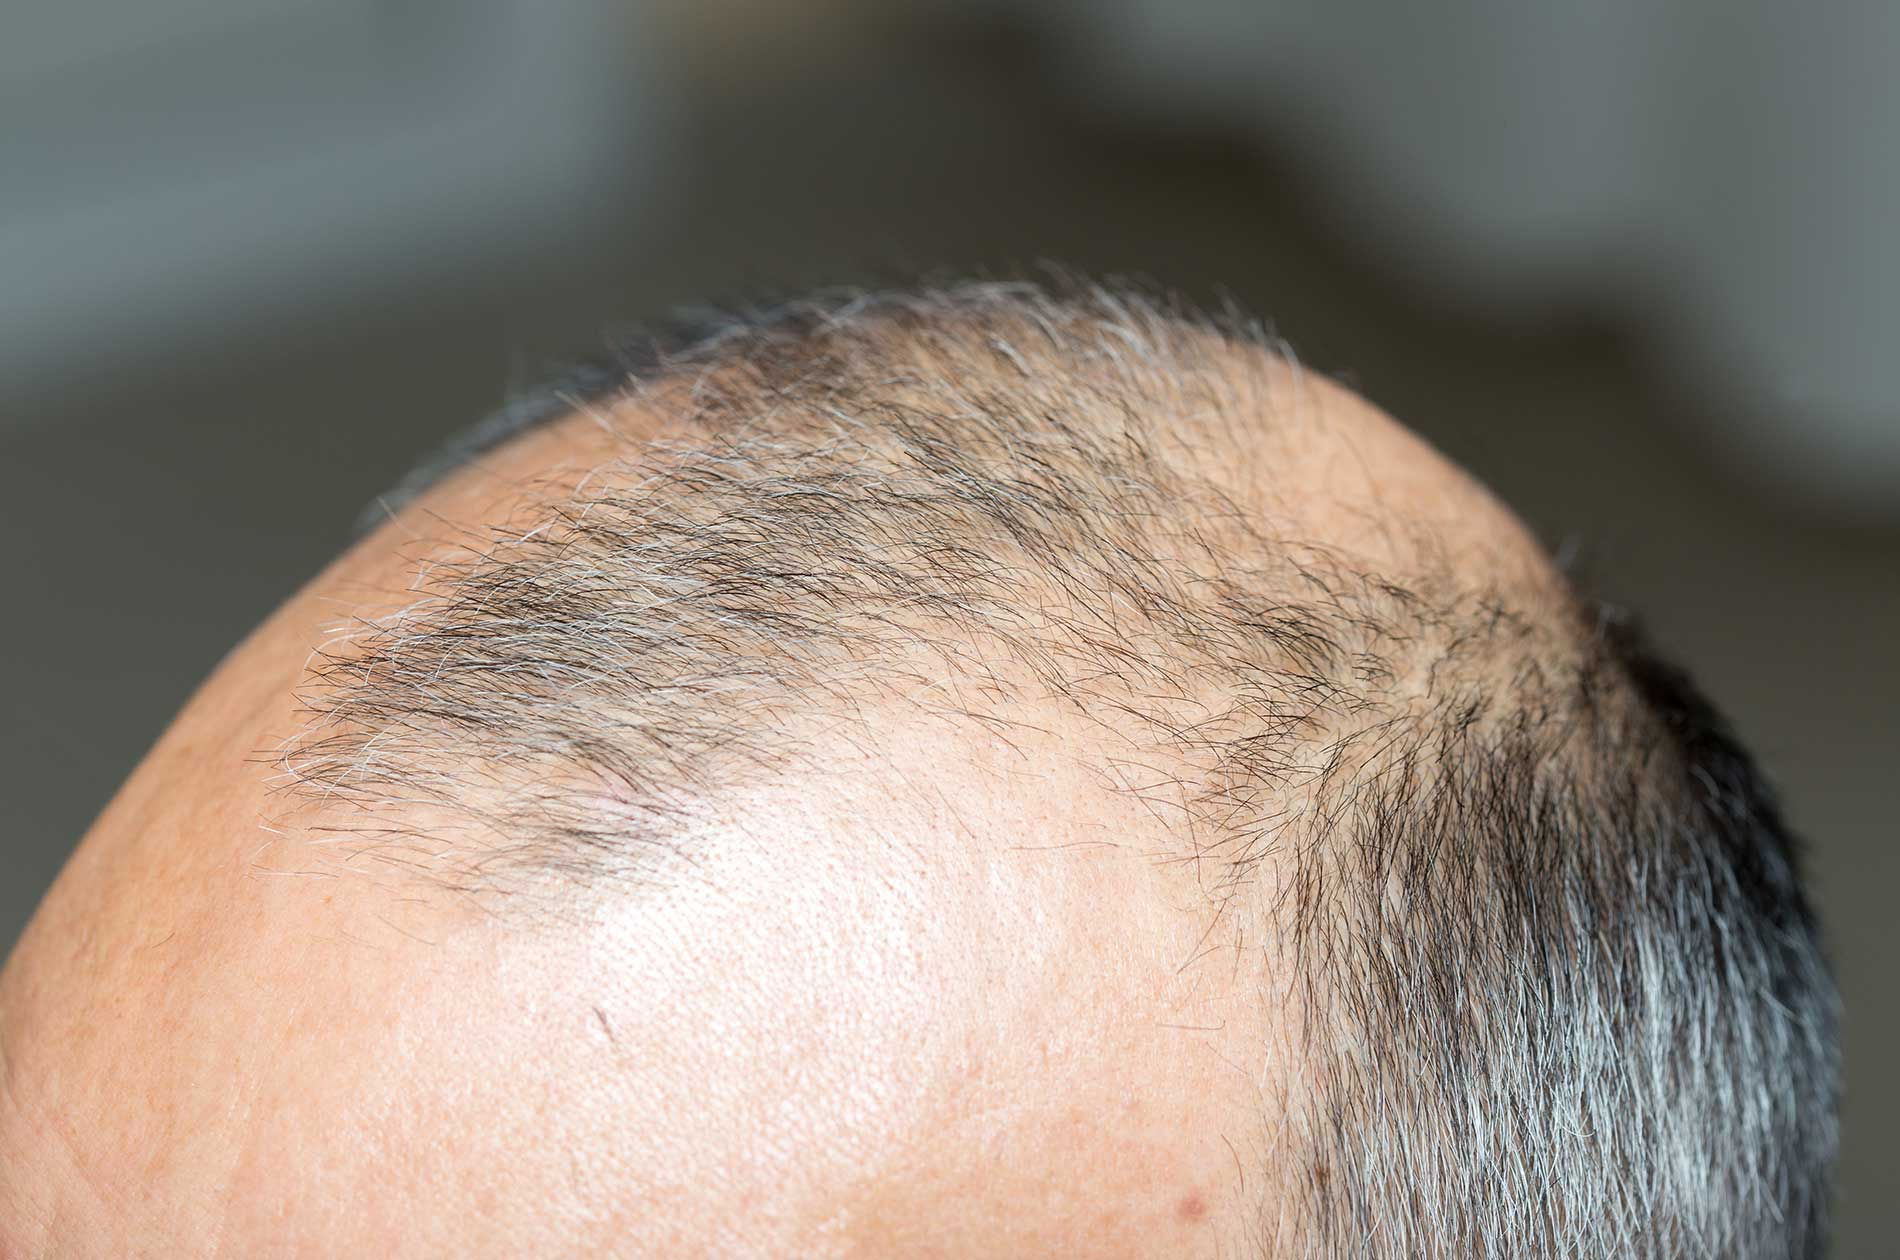 A man suffering from alopecia